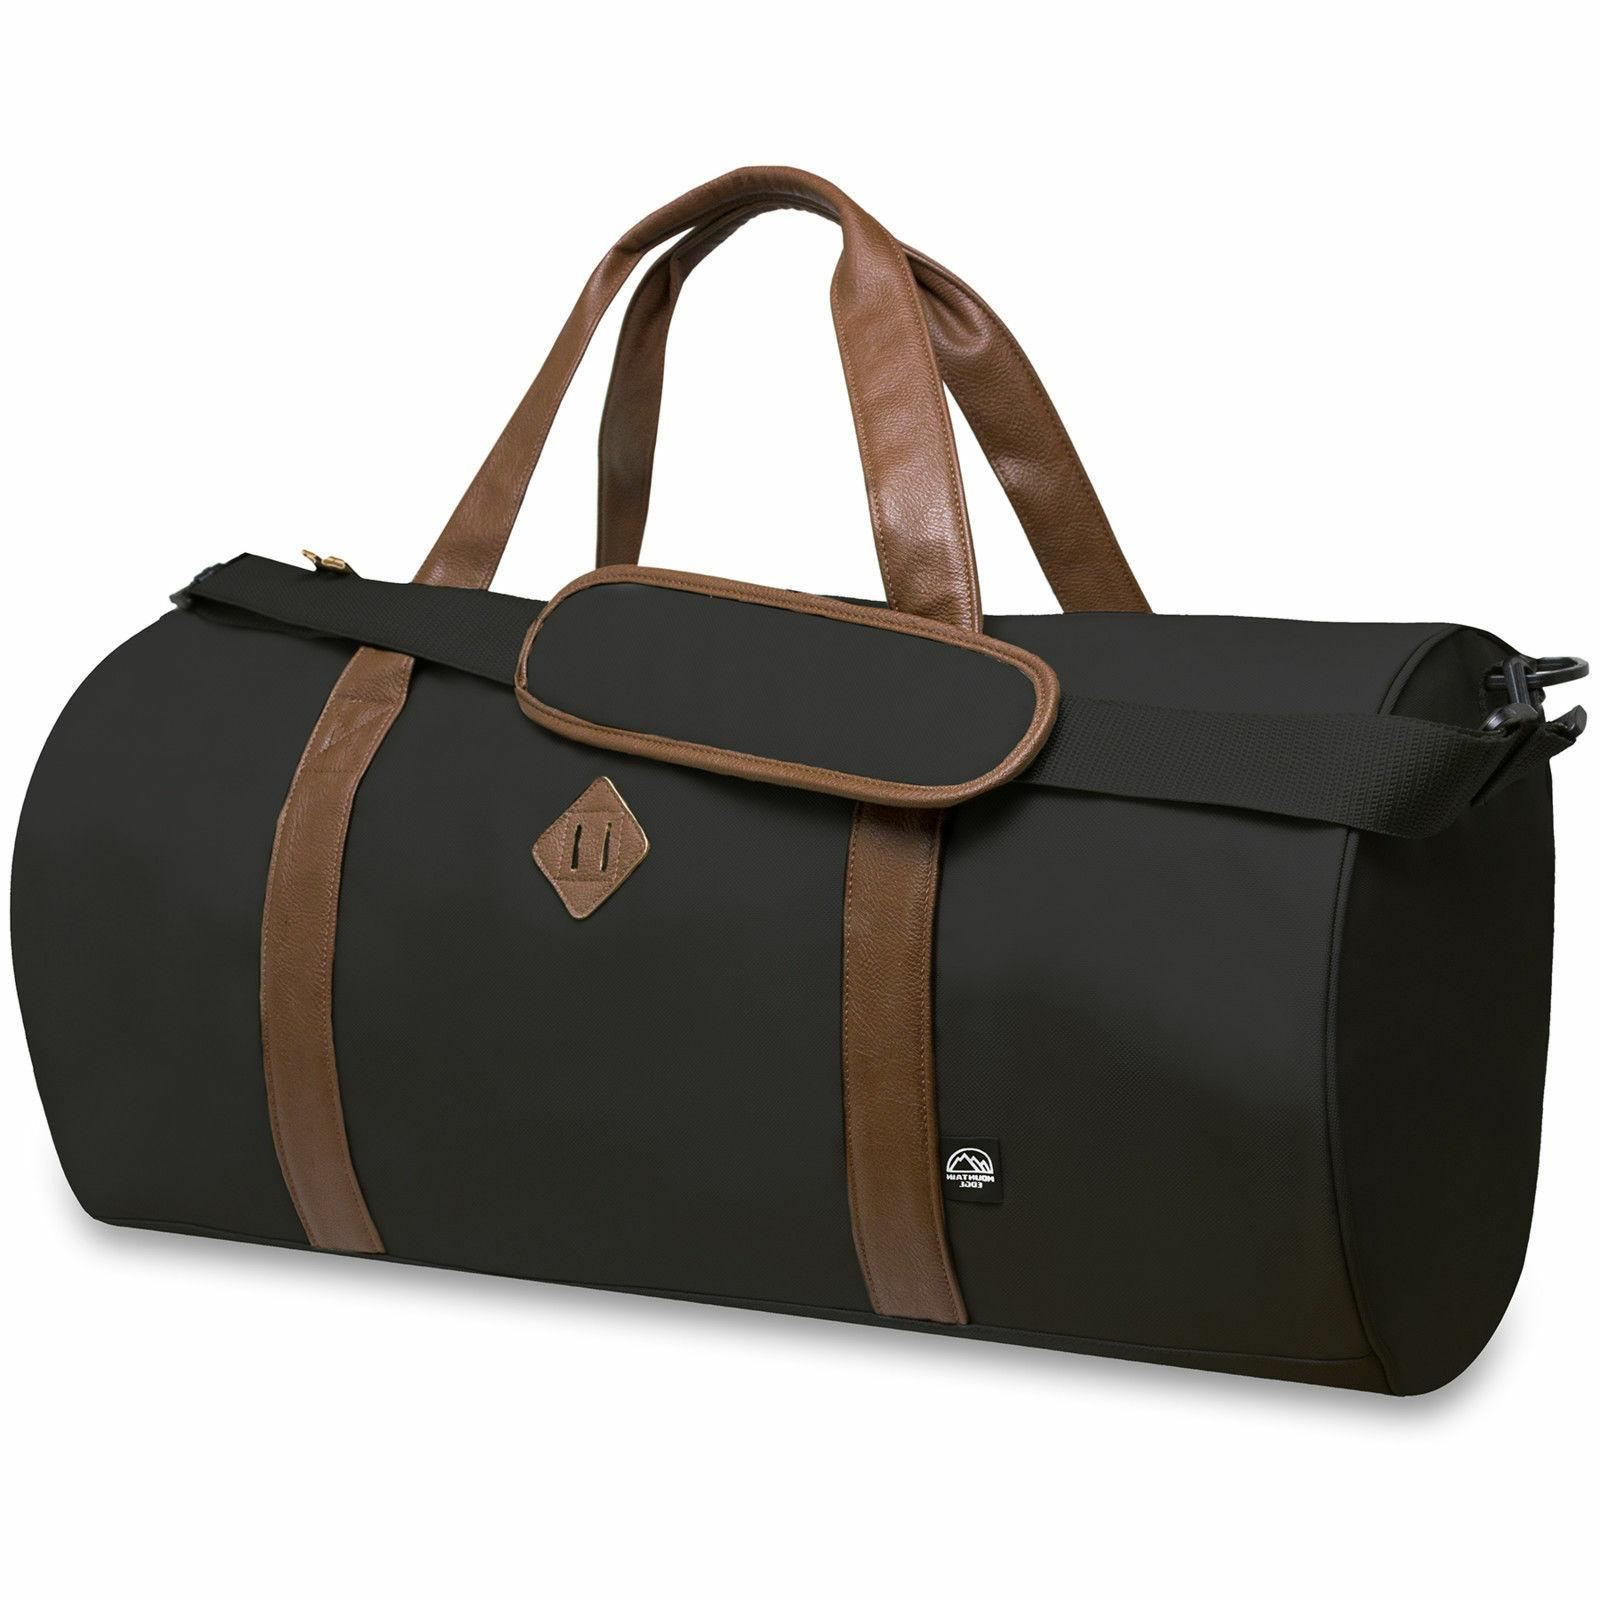 Trailmaker 24 Inch Barrel Duffel Bag